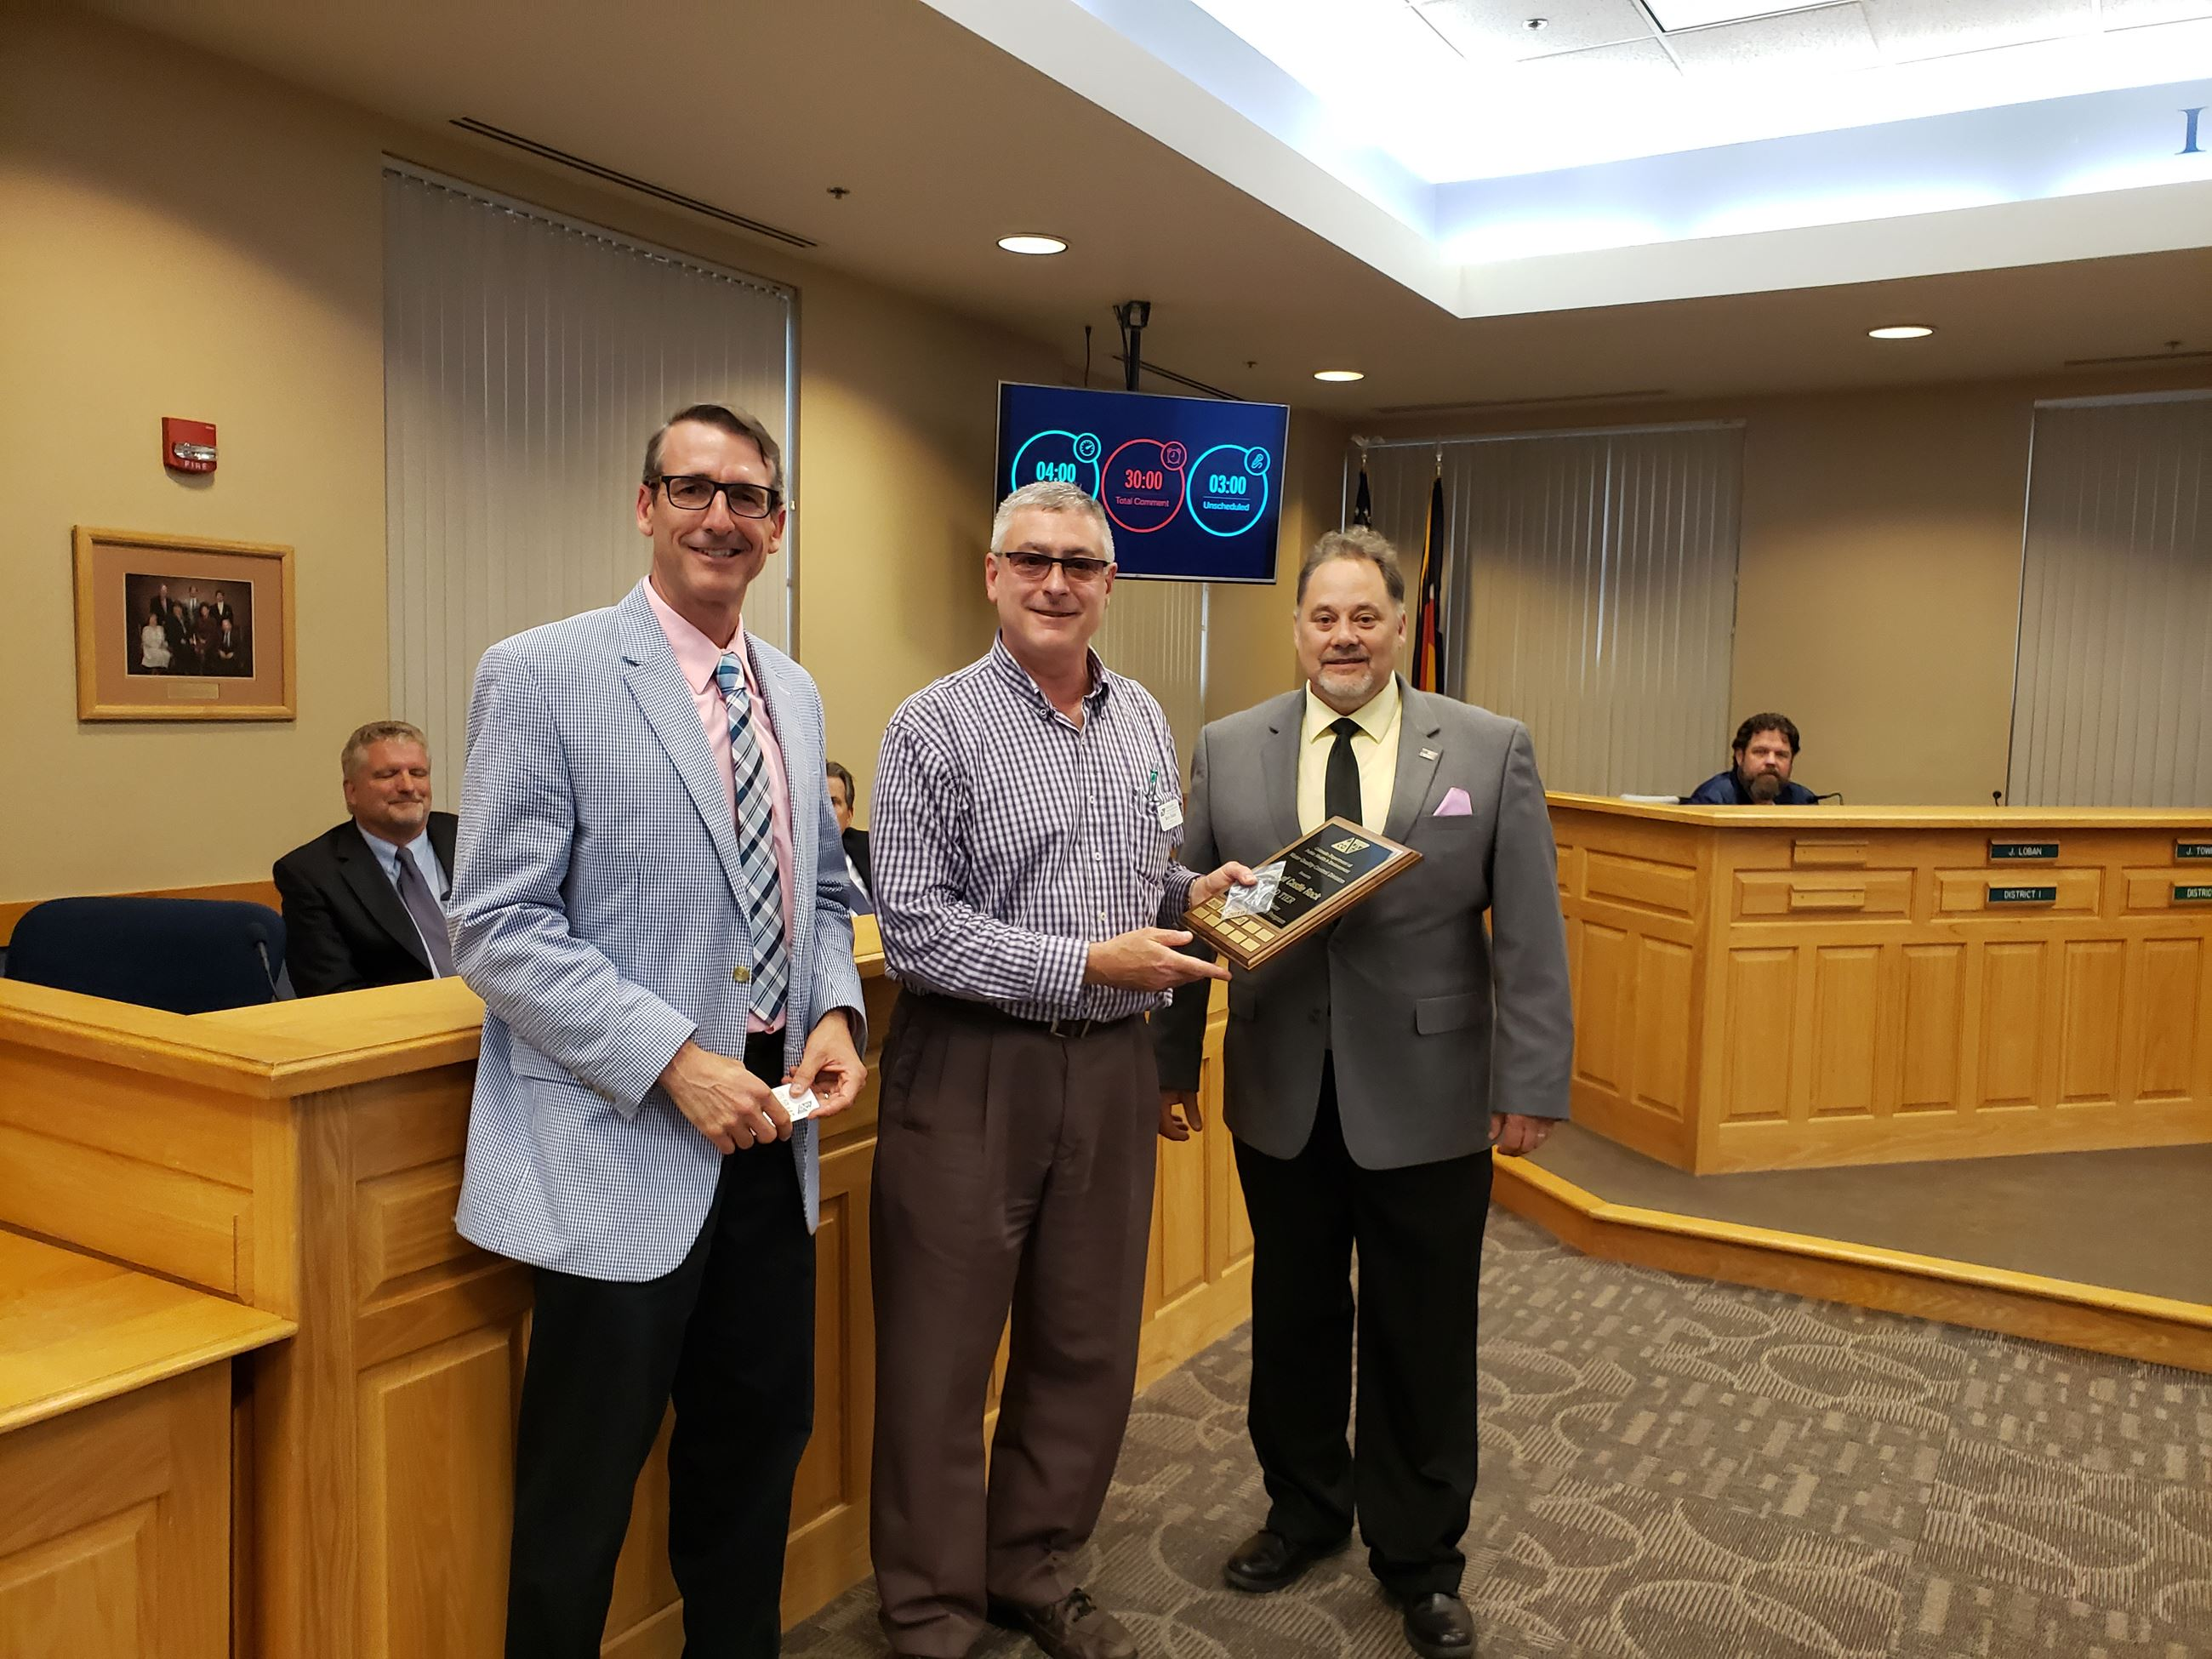 20190618_182552Castle Rock Water Department presented with awarded the Gold Tier in the Pursuing Exc